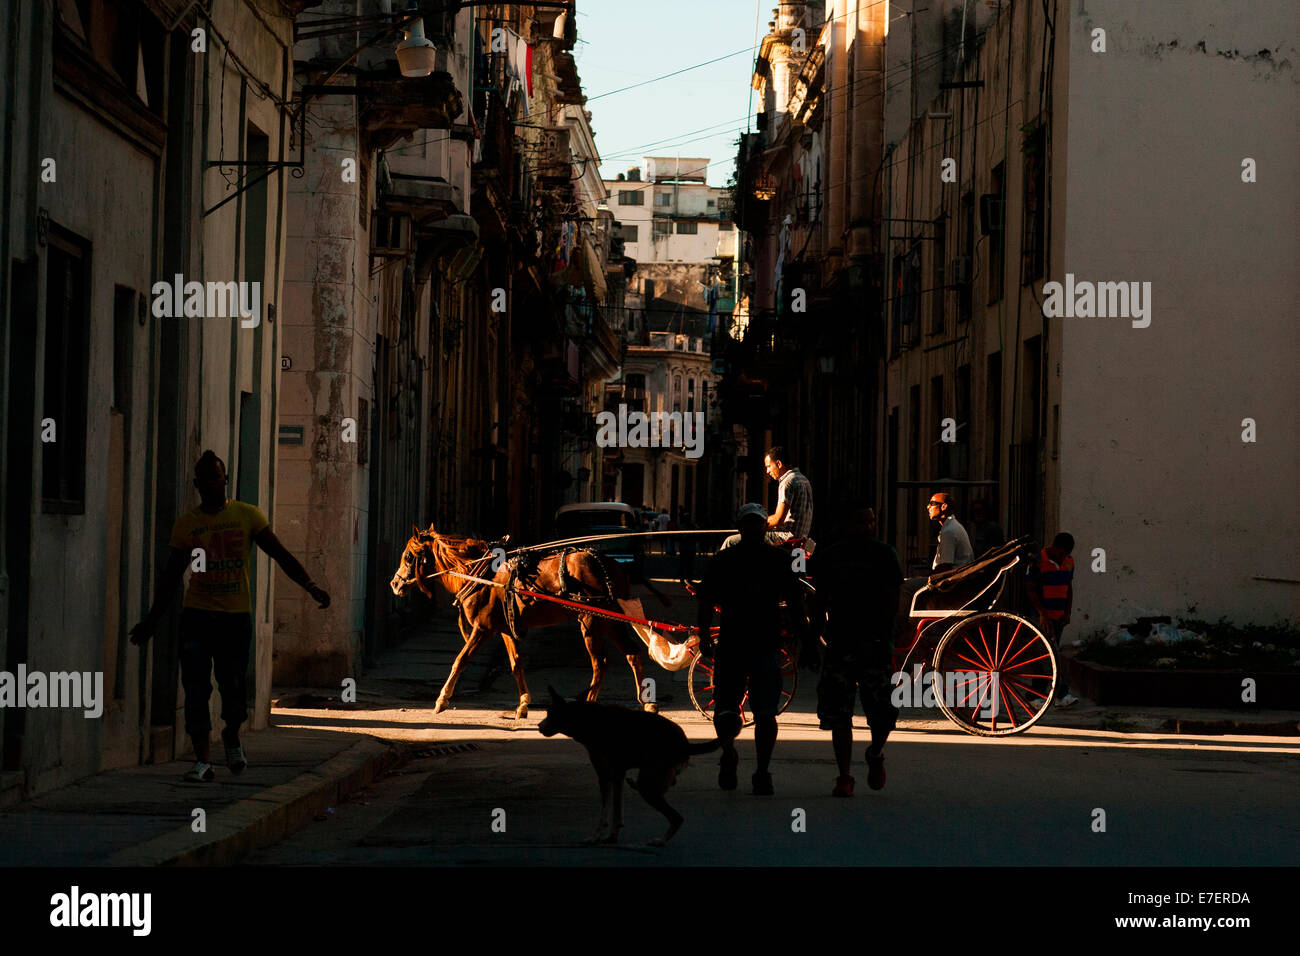 A horse carriage in Havana, Cuba carries its passenger down a side street, into a beam of late afternoon sun. The - Stock Image